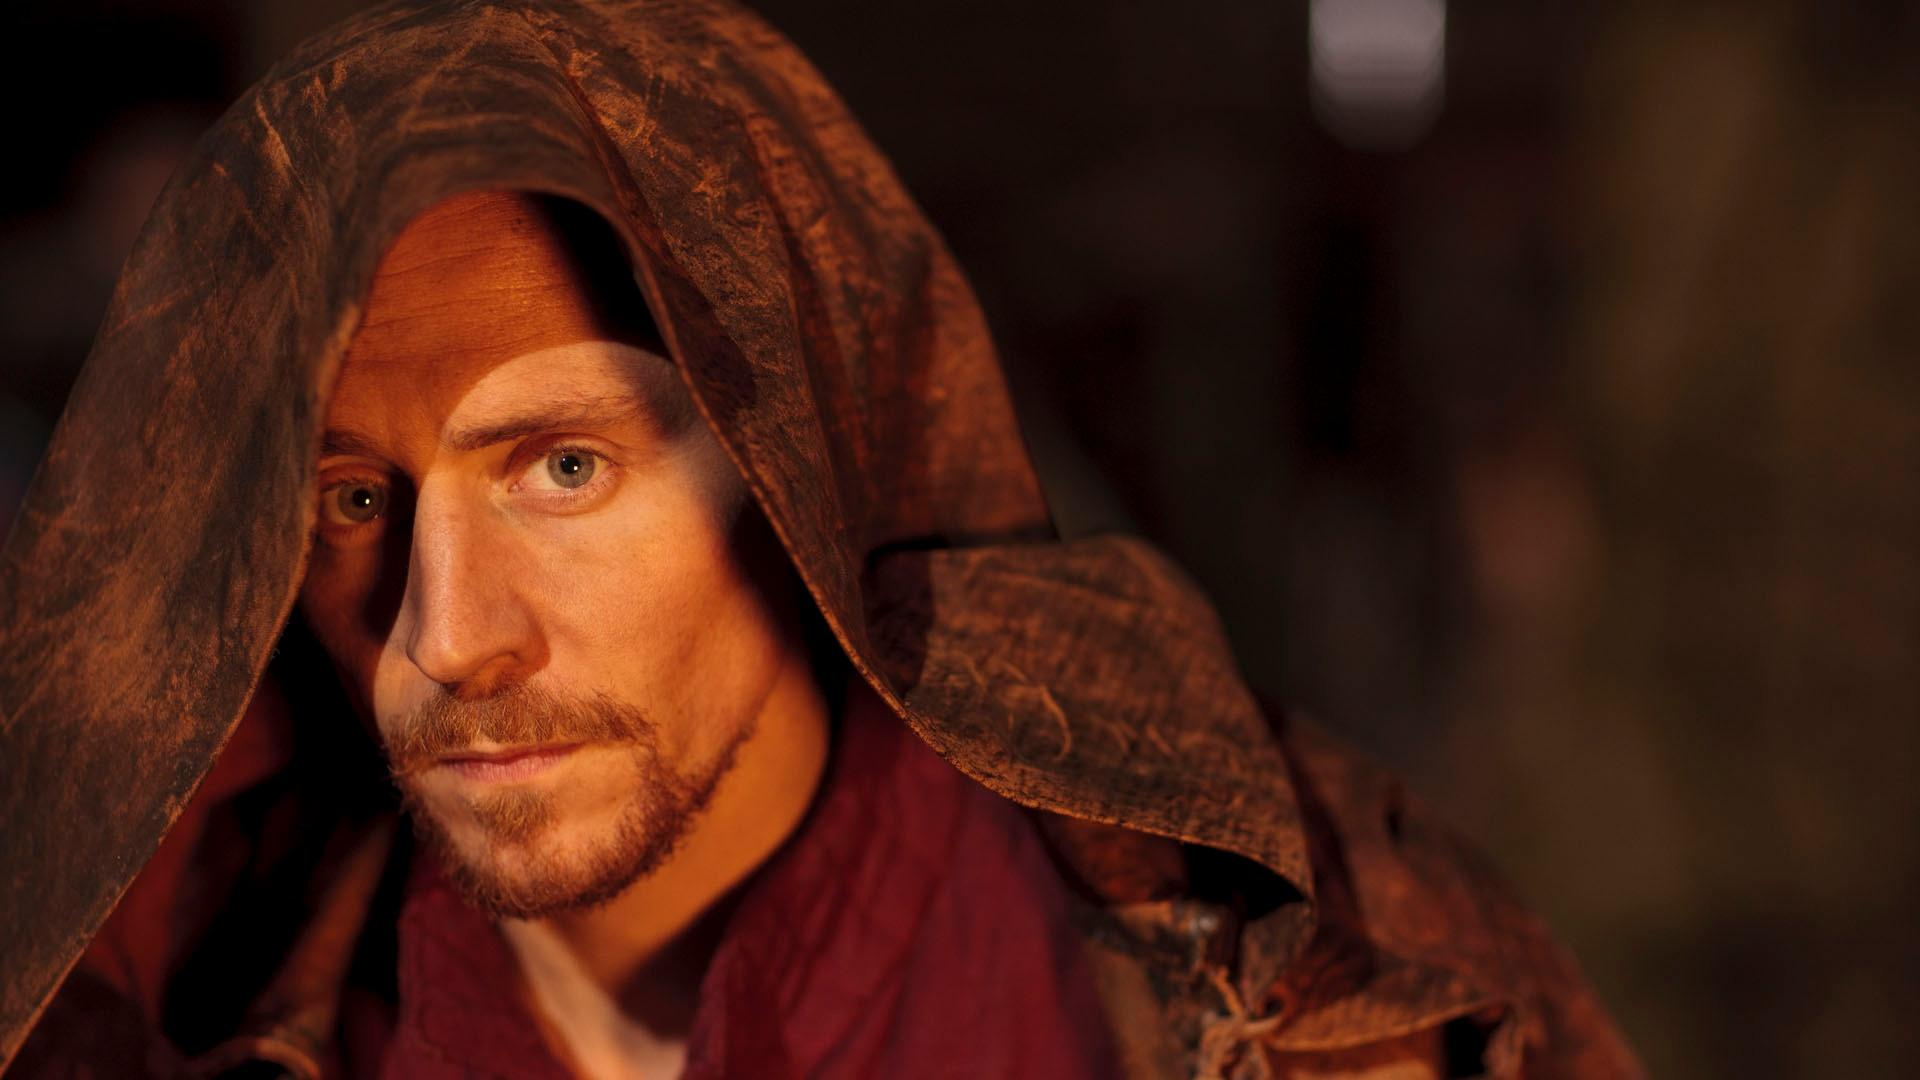 henry v movie to play comparison essay O ctober 25, 2015 marks 600 years since agincourt - but there was more to henry v's triumph than the bard to chose to tell in his epic and inspirational play henry v was the last of the eight.